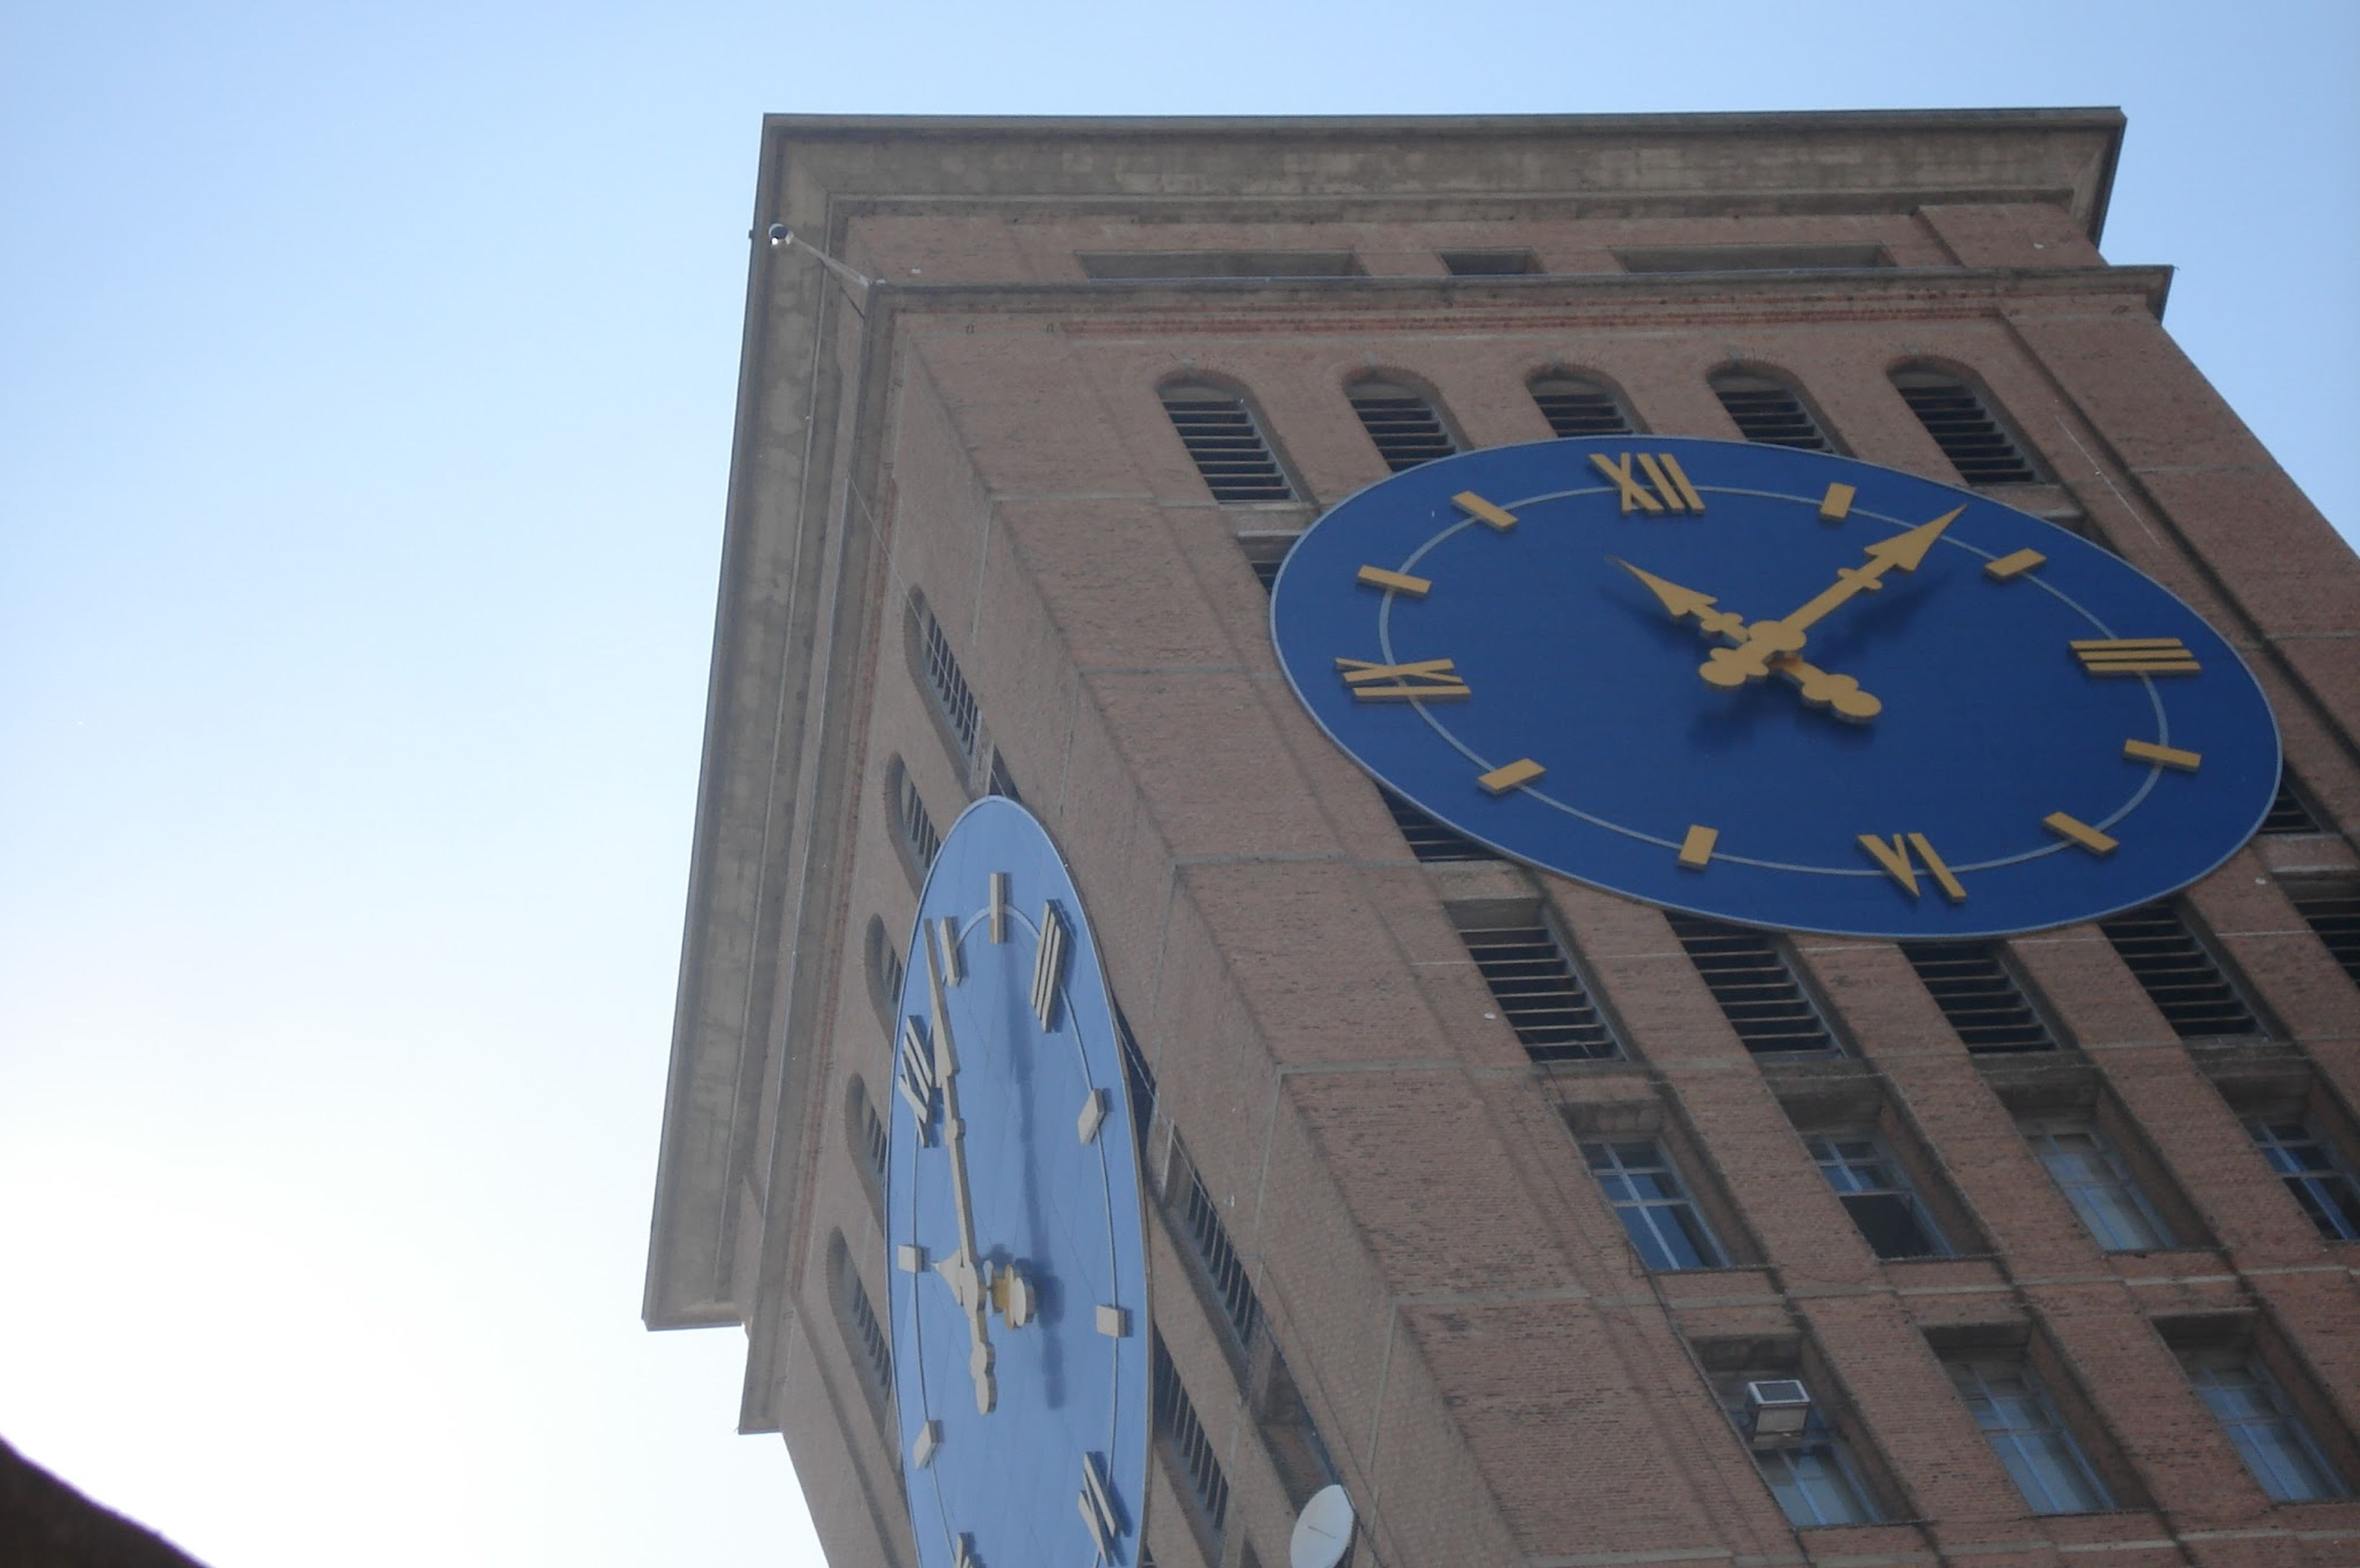 low angle view, architecture, built structure, building exterior, clock, clear sky, time, clock tower, text, communication, western script, day, outdoors, clock face, city, no people, circle, tower, sky, history